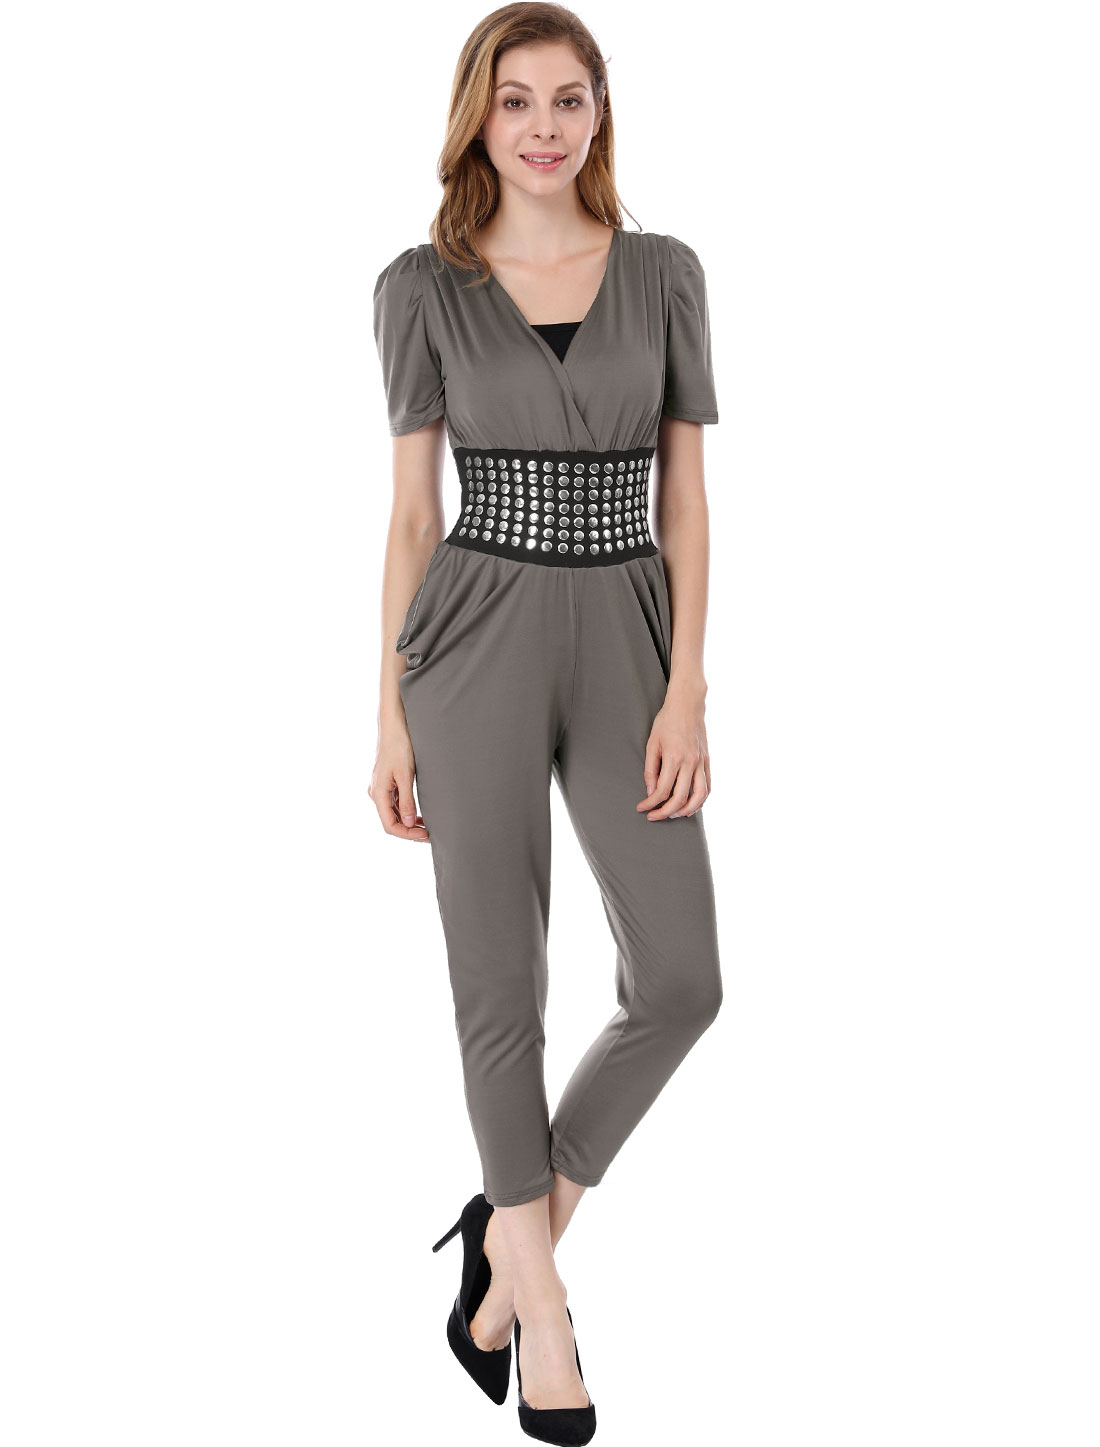 Lady Cross V Neck Studded Waist Harem Pants Jumpsuit XS